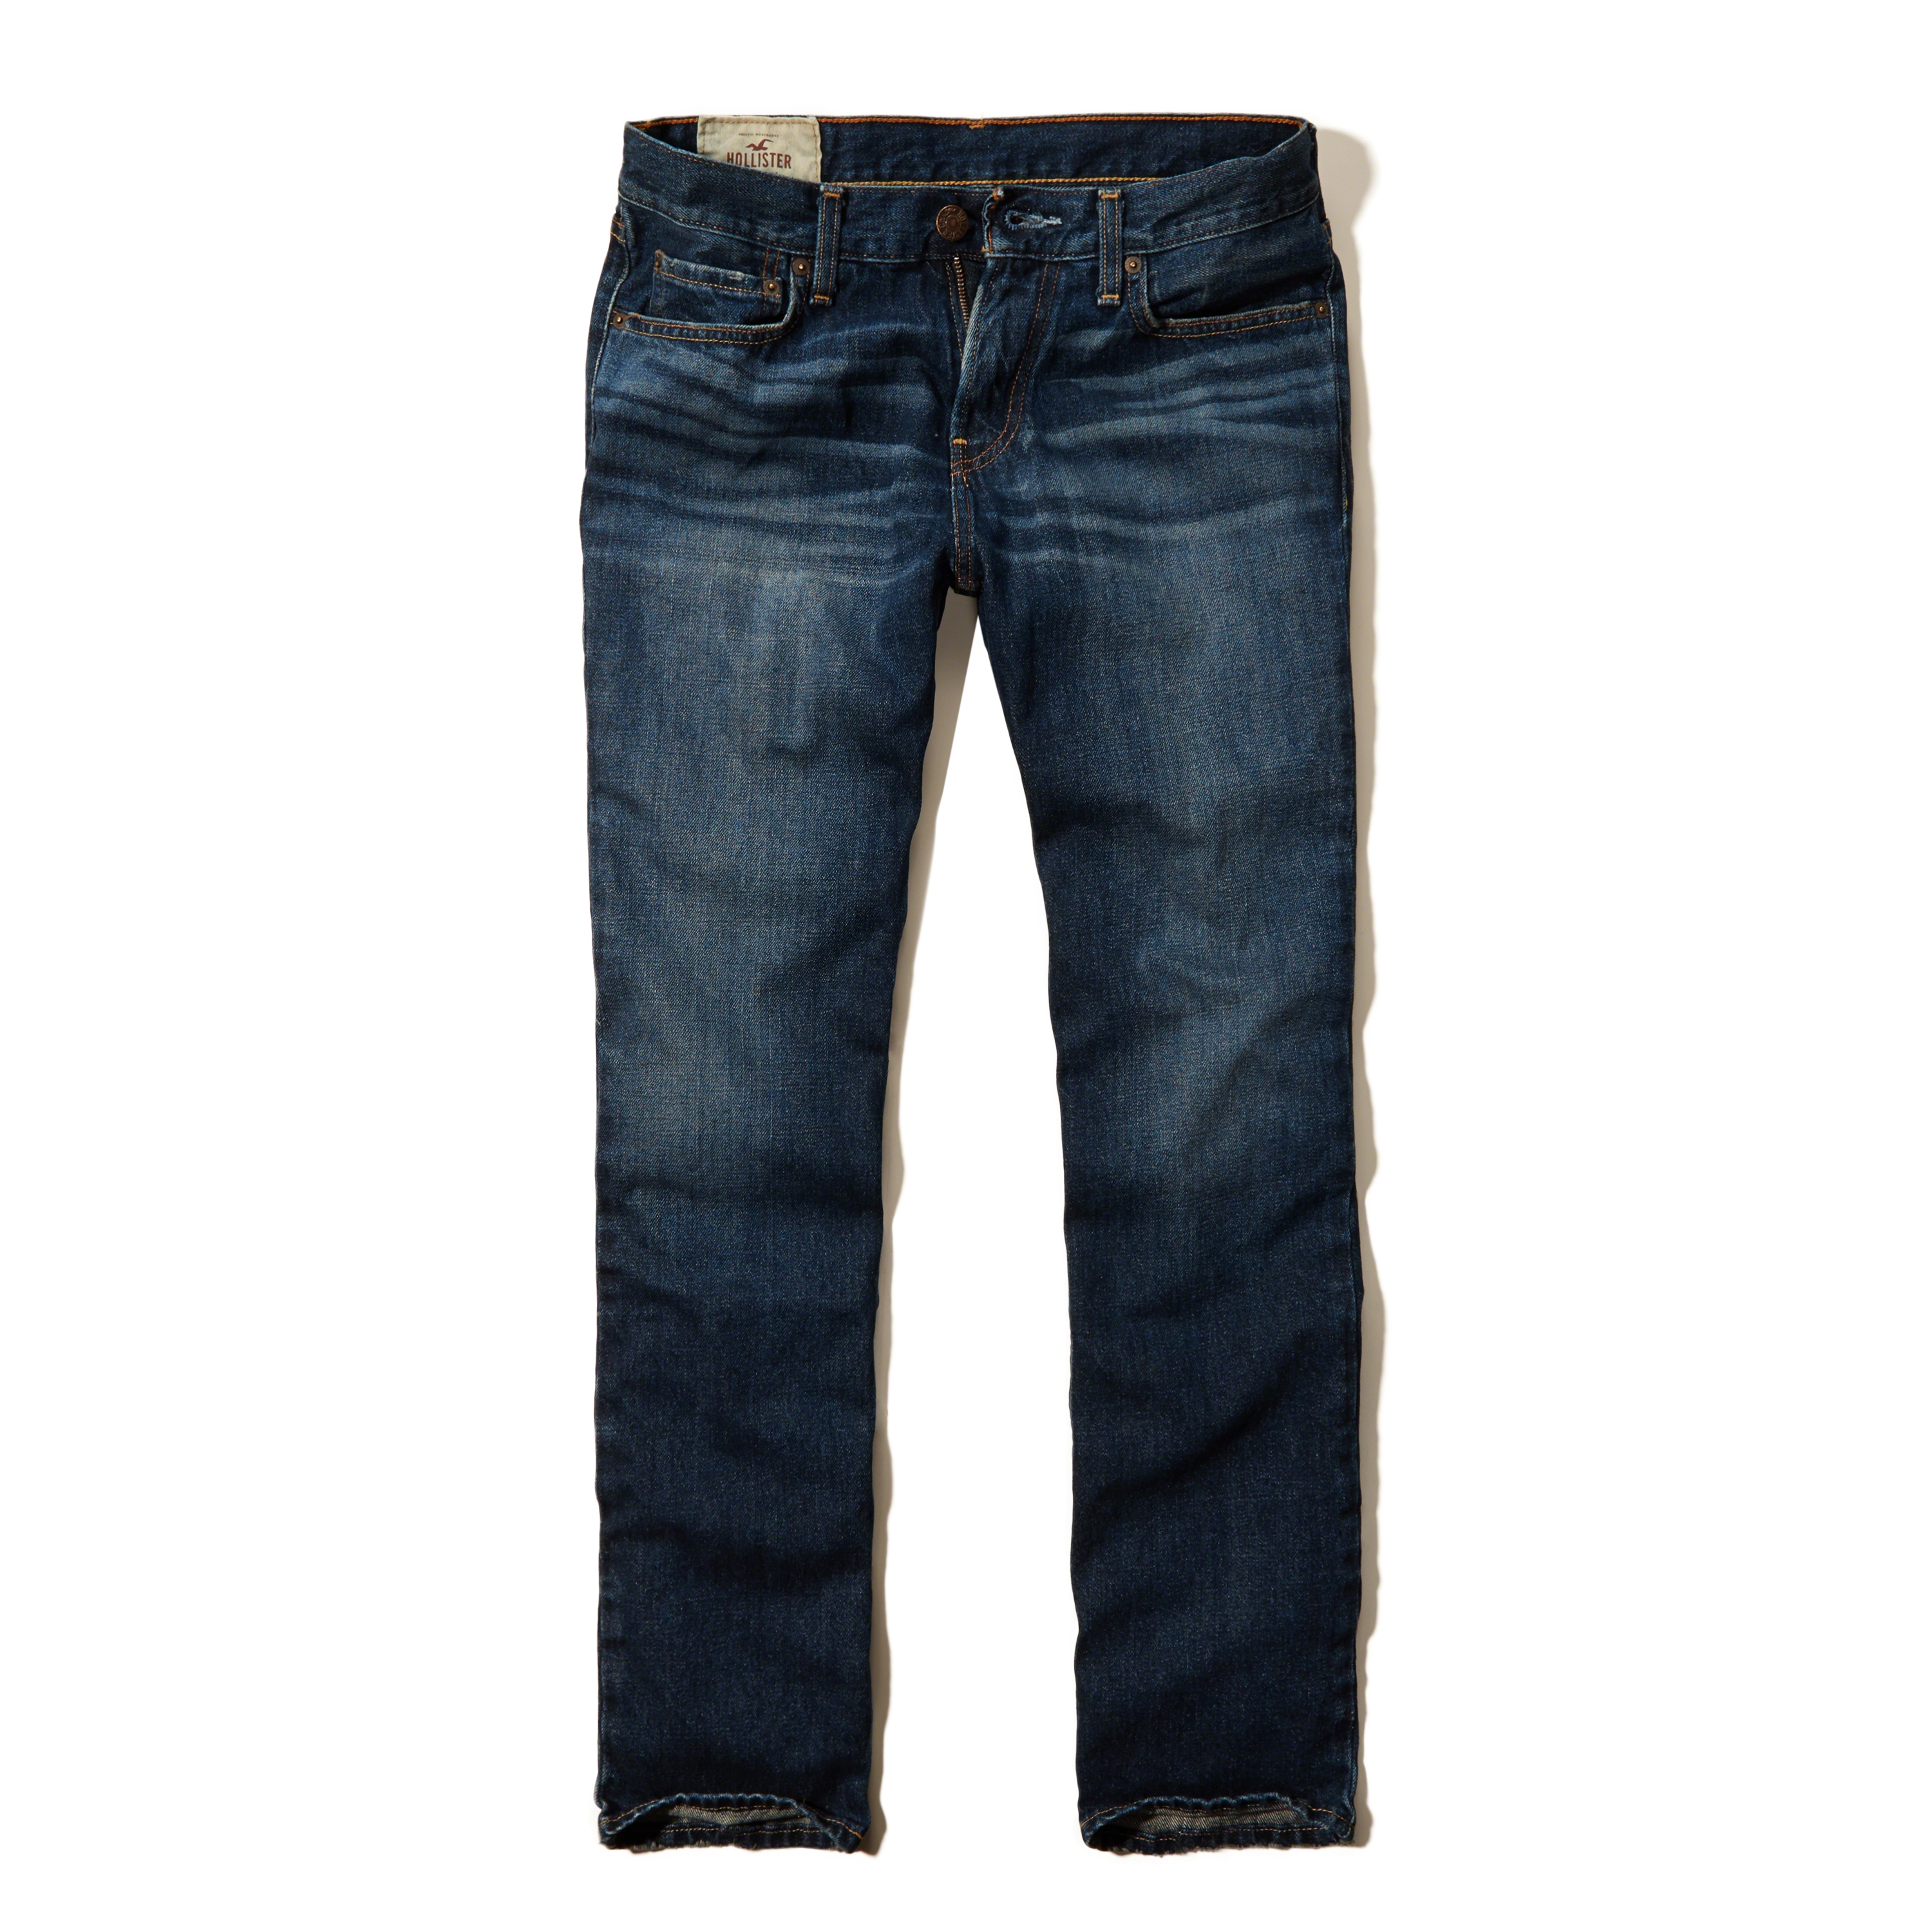 hollister dark jeans for men - photo #27